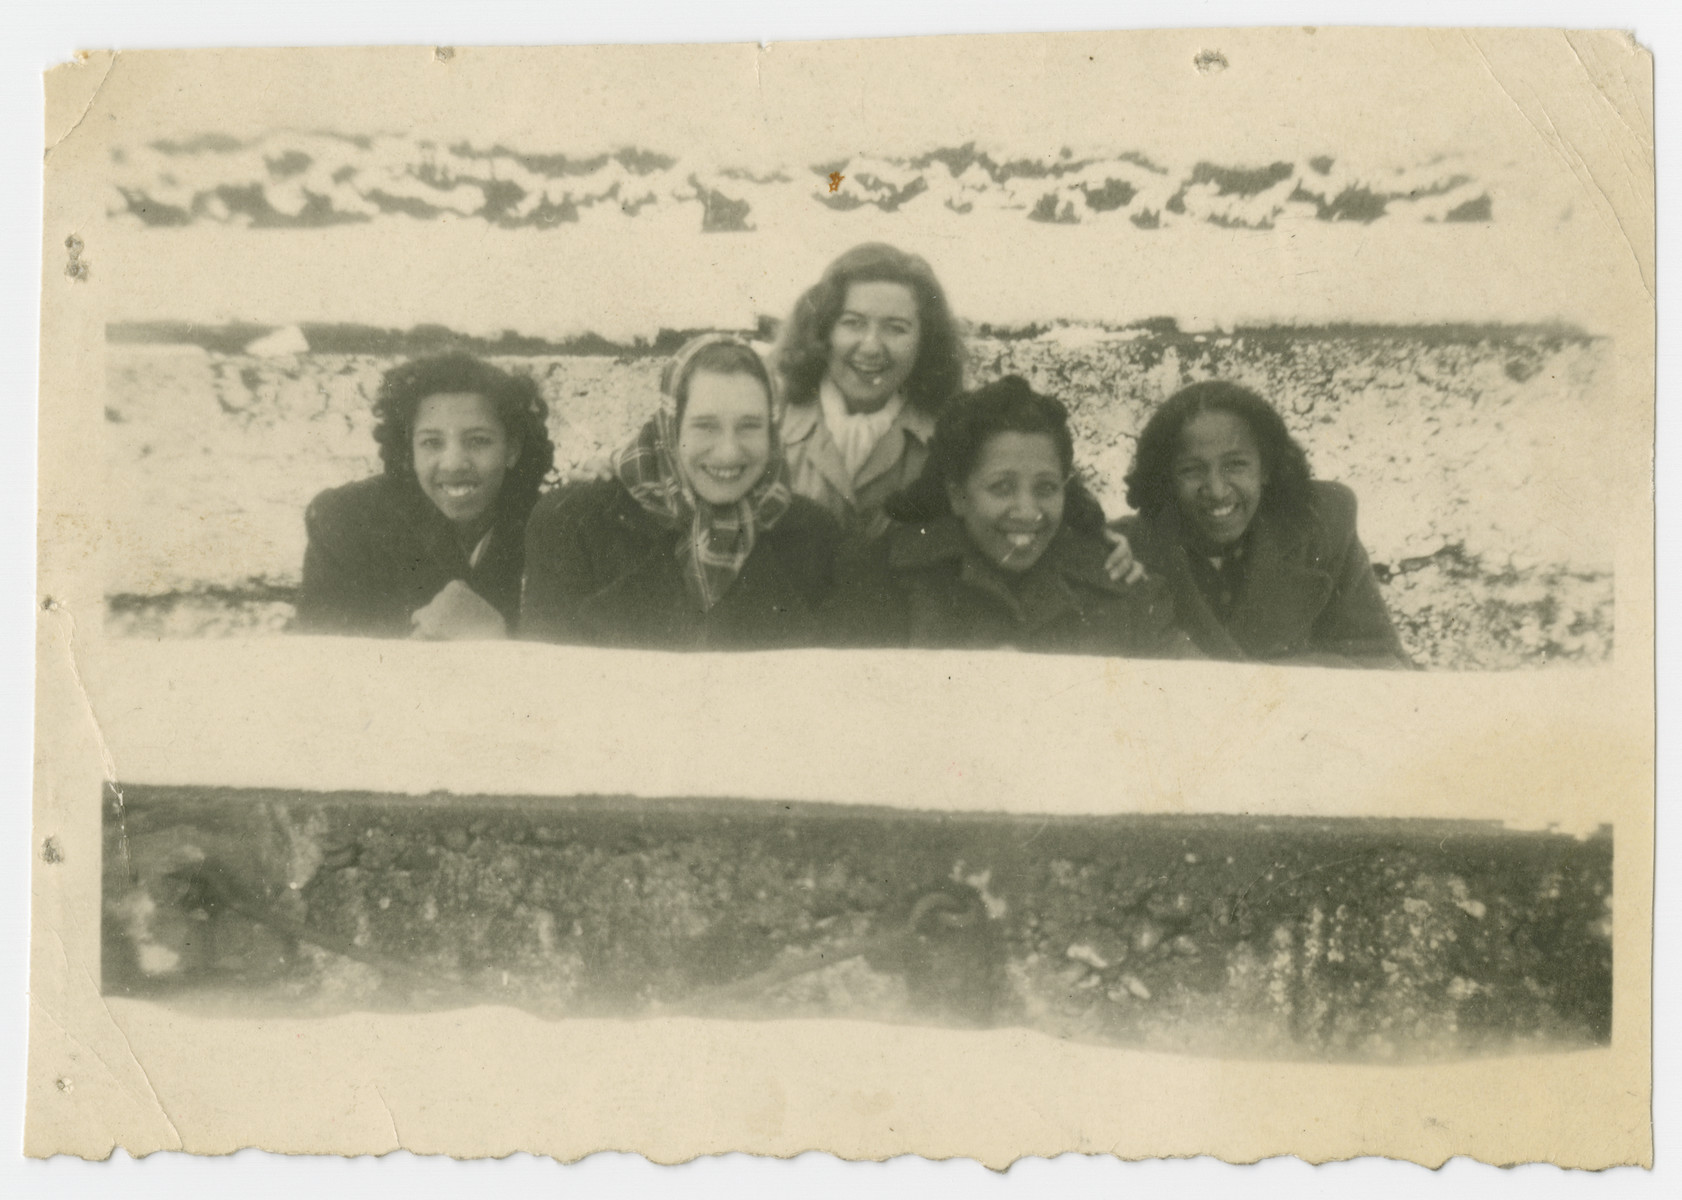 Group portrait of American women in the Liebenau internment camp.  Among those pictured are Marilyn, Ida and Jacqueline Johnson.